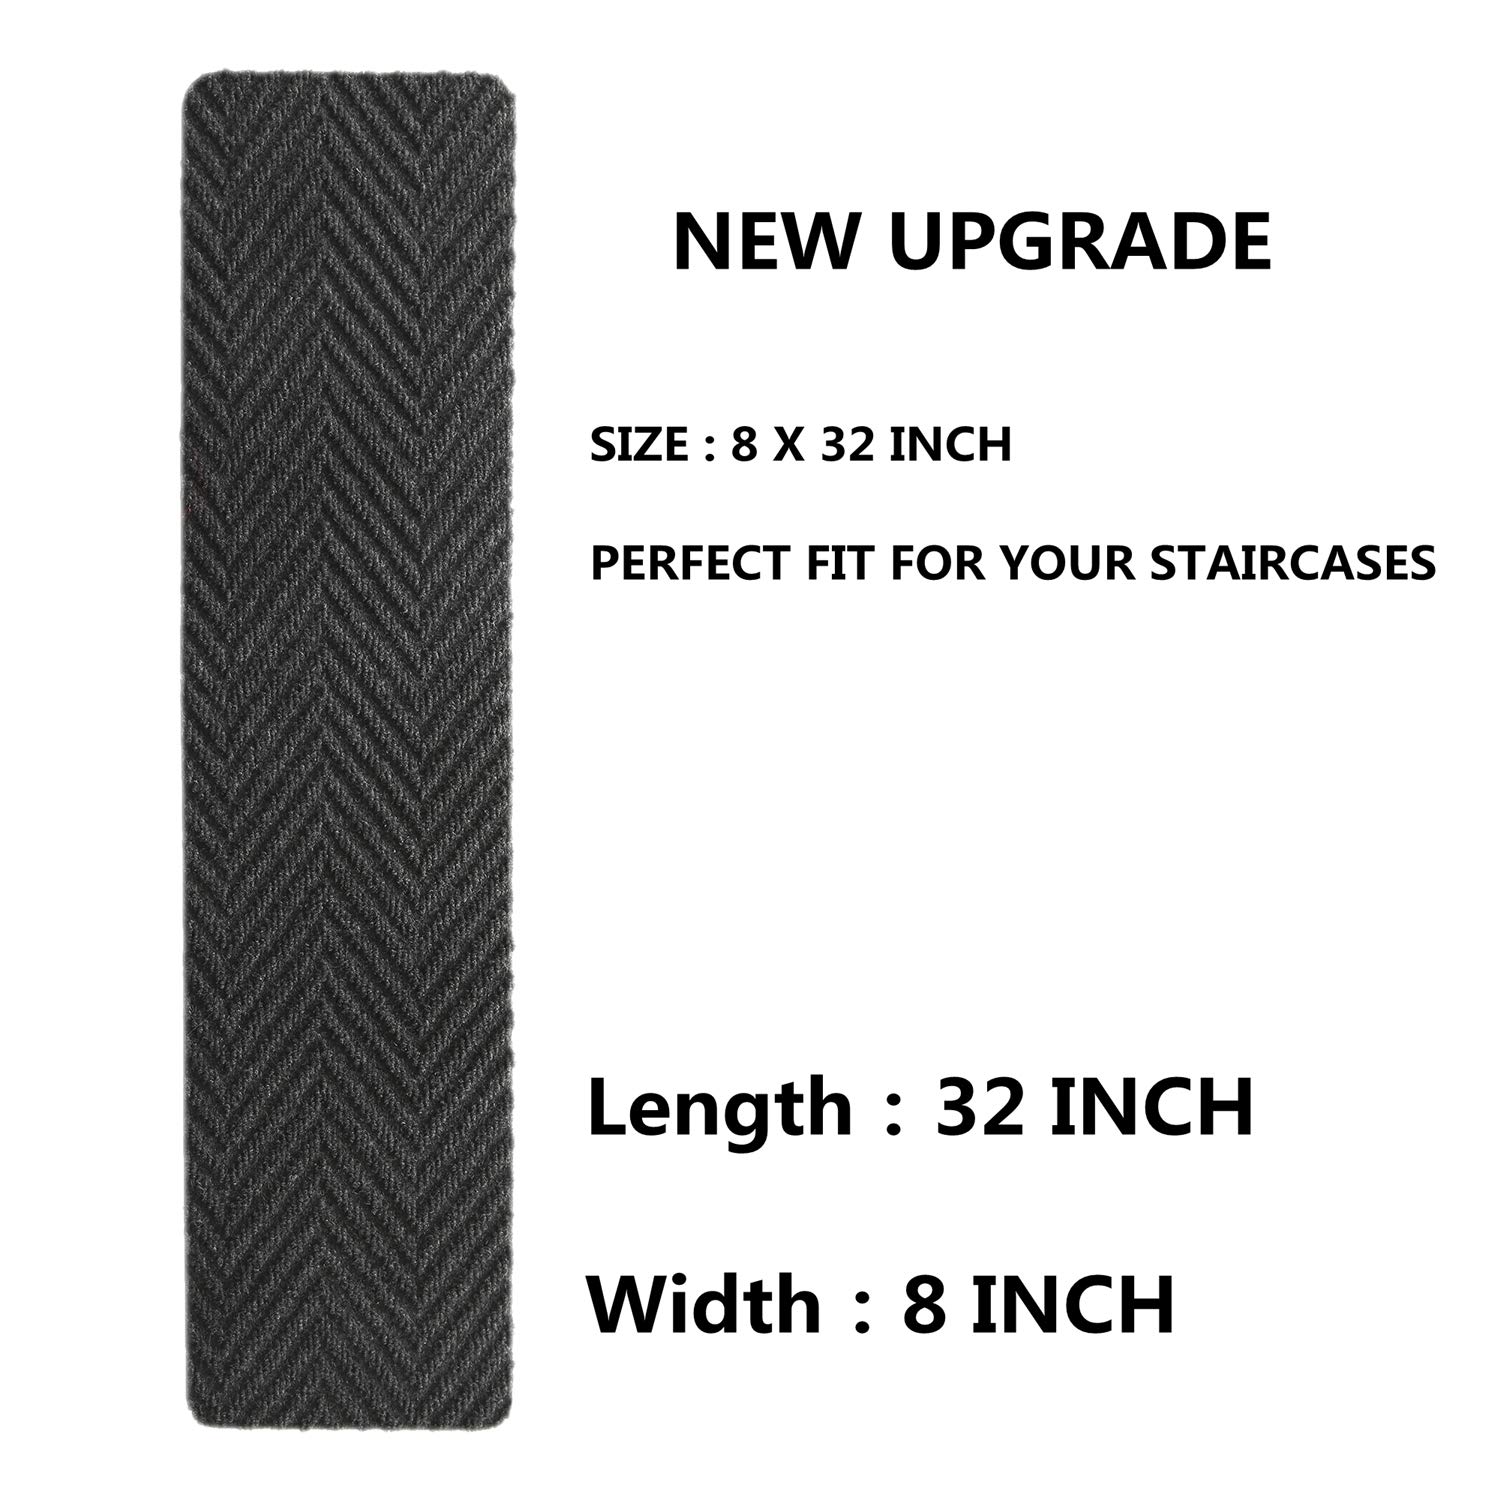 """Indoor Outdoor Pet Dog Stair Treads Pads Non Slip Stair Treads Carpet Set of 13 Crafted PVC fibber Backing for Child Proofing//Elderly Safety Non-Slip Stairway Carpet Rugs 8/"""" x 32 ,Grey"""